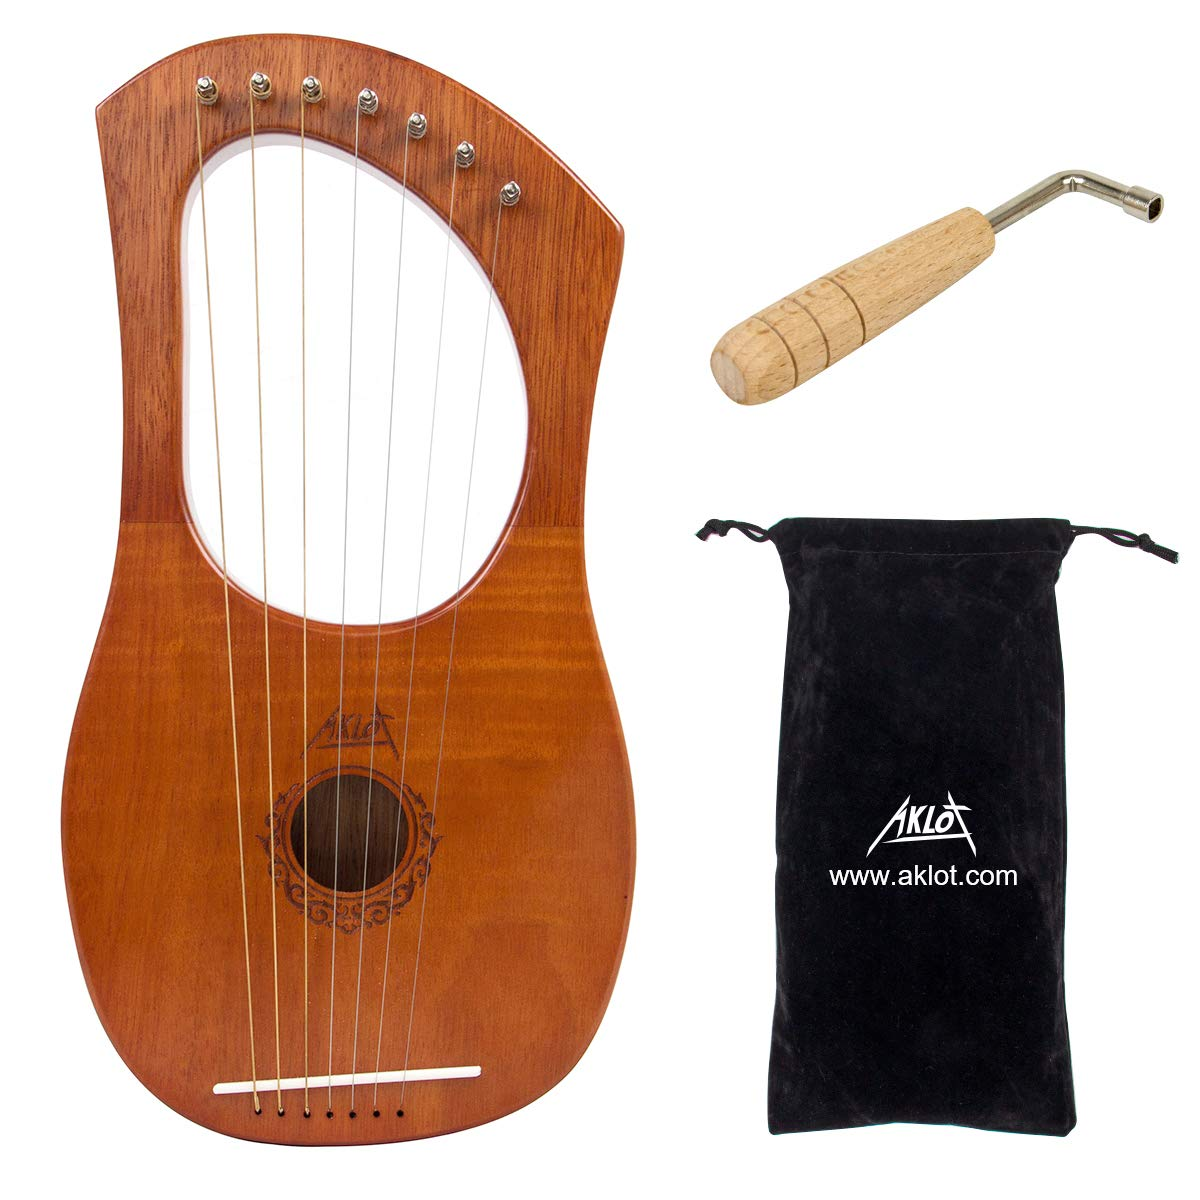 AKLOT Lyre Harp, 7 Metal String Bone Saddle Mahogany Lye Harp with Tuning Wrench and Black Gig Bag